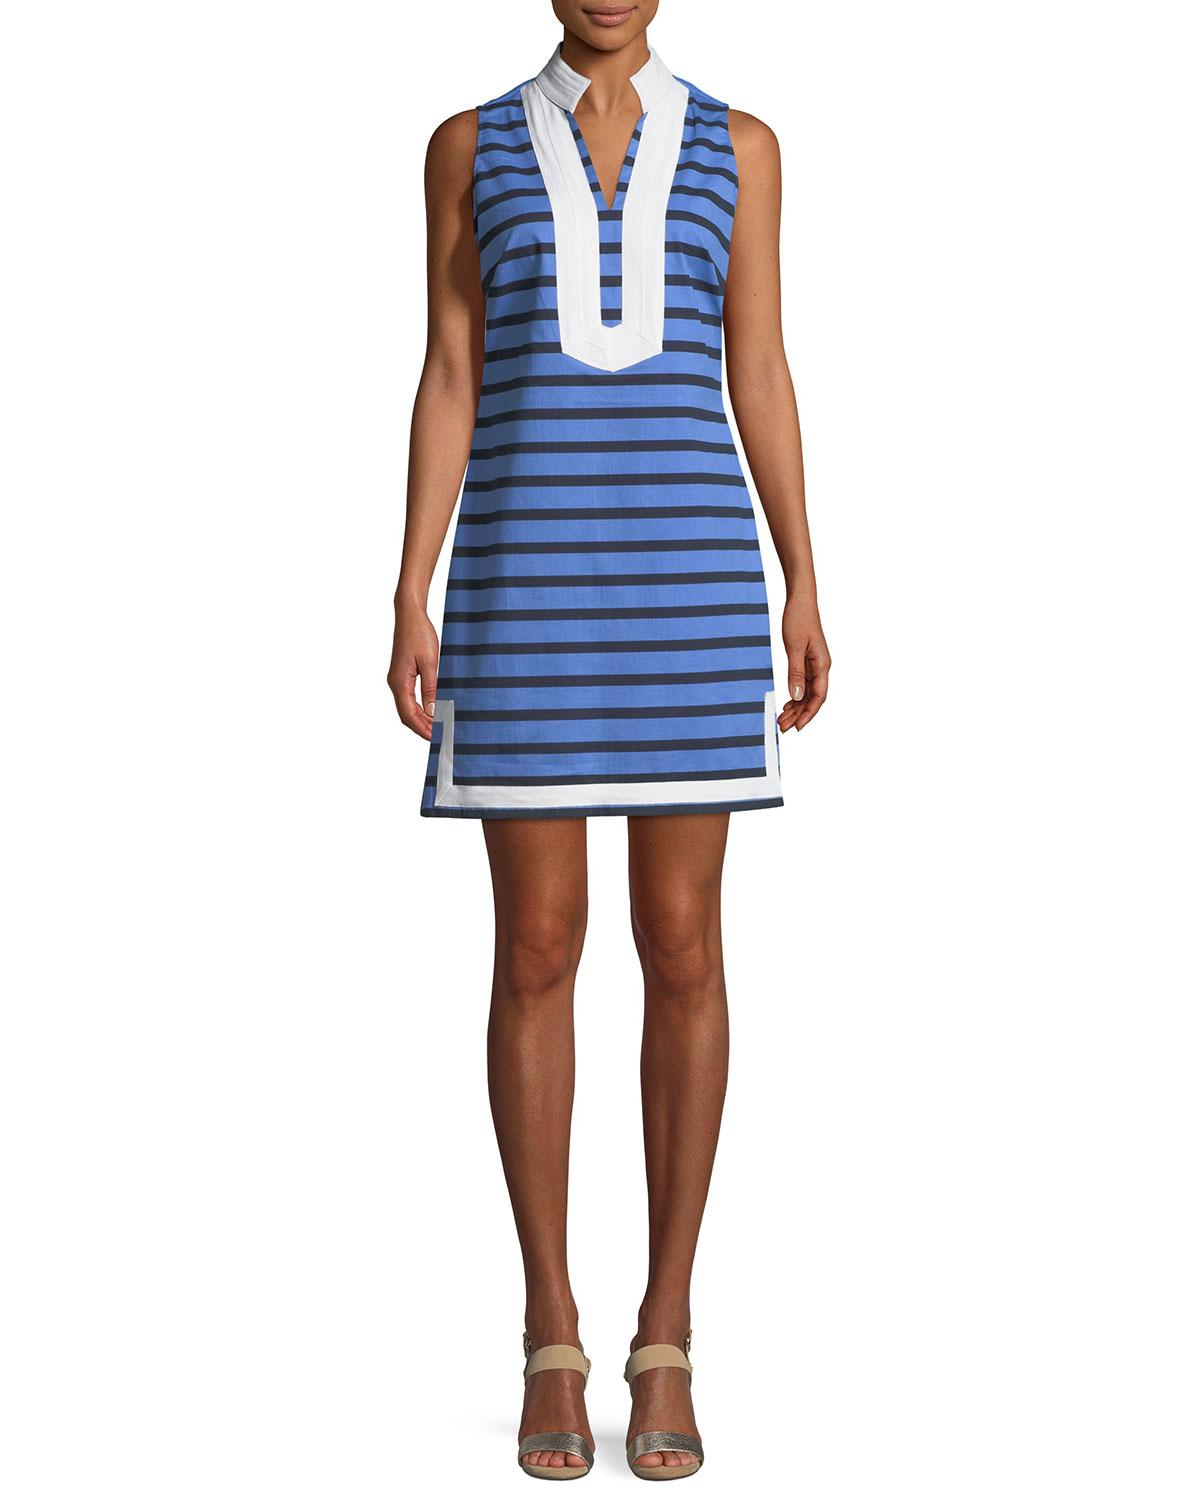 292eac95de5 Lyst - Sail To Sable Sleeveless Striped Tunic Dress in Blue